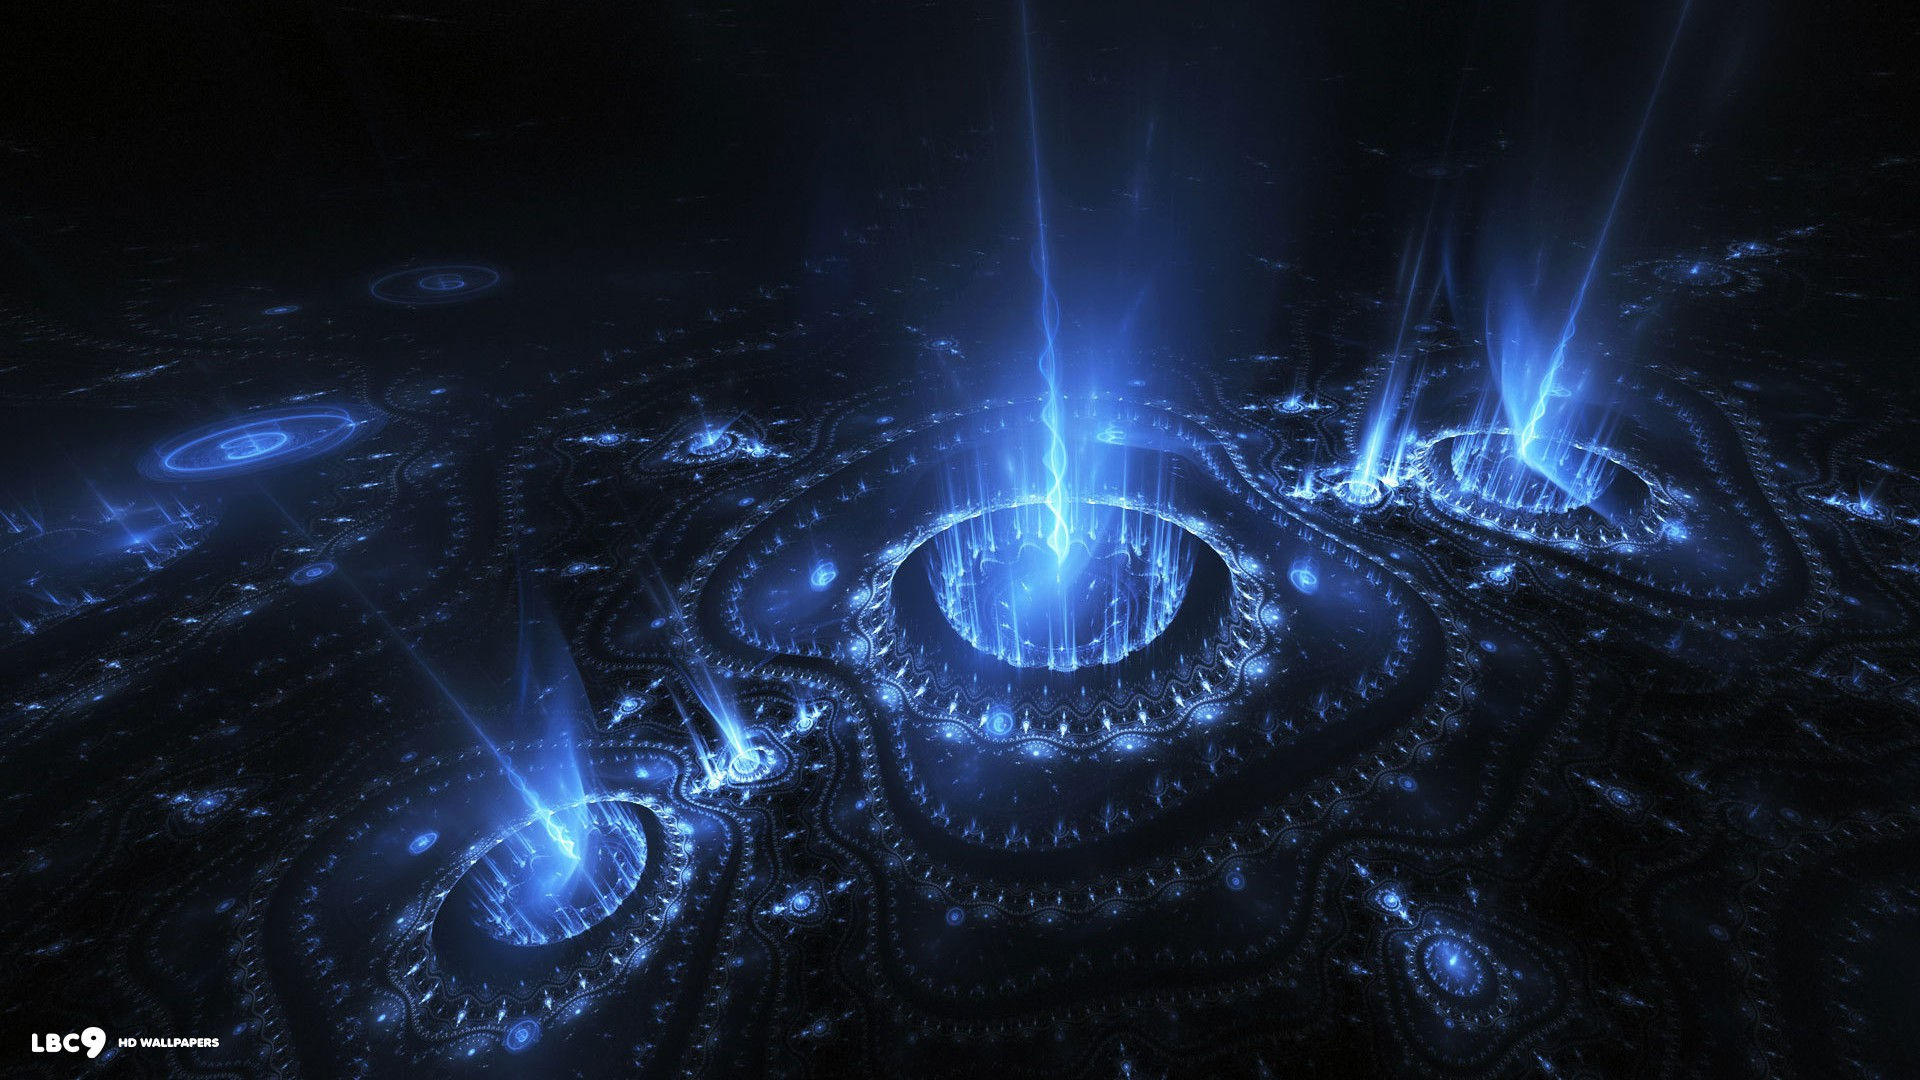 Dark Fractal Wallpapers High Quality with HD Wallpaper Resolution 1920×1080 Fractal  Wallpapers 1080p (